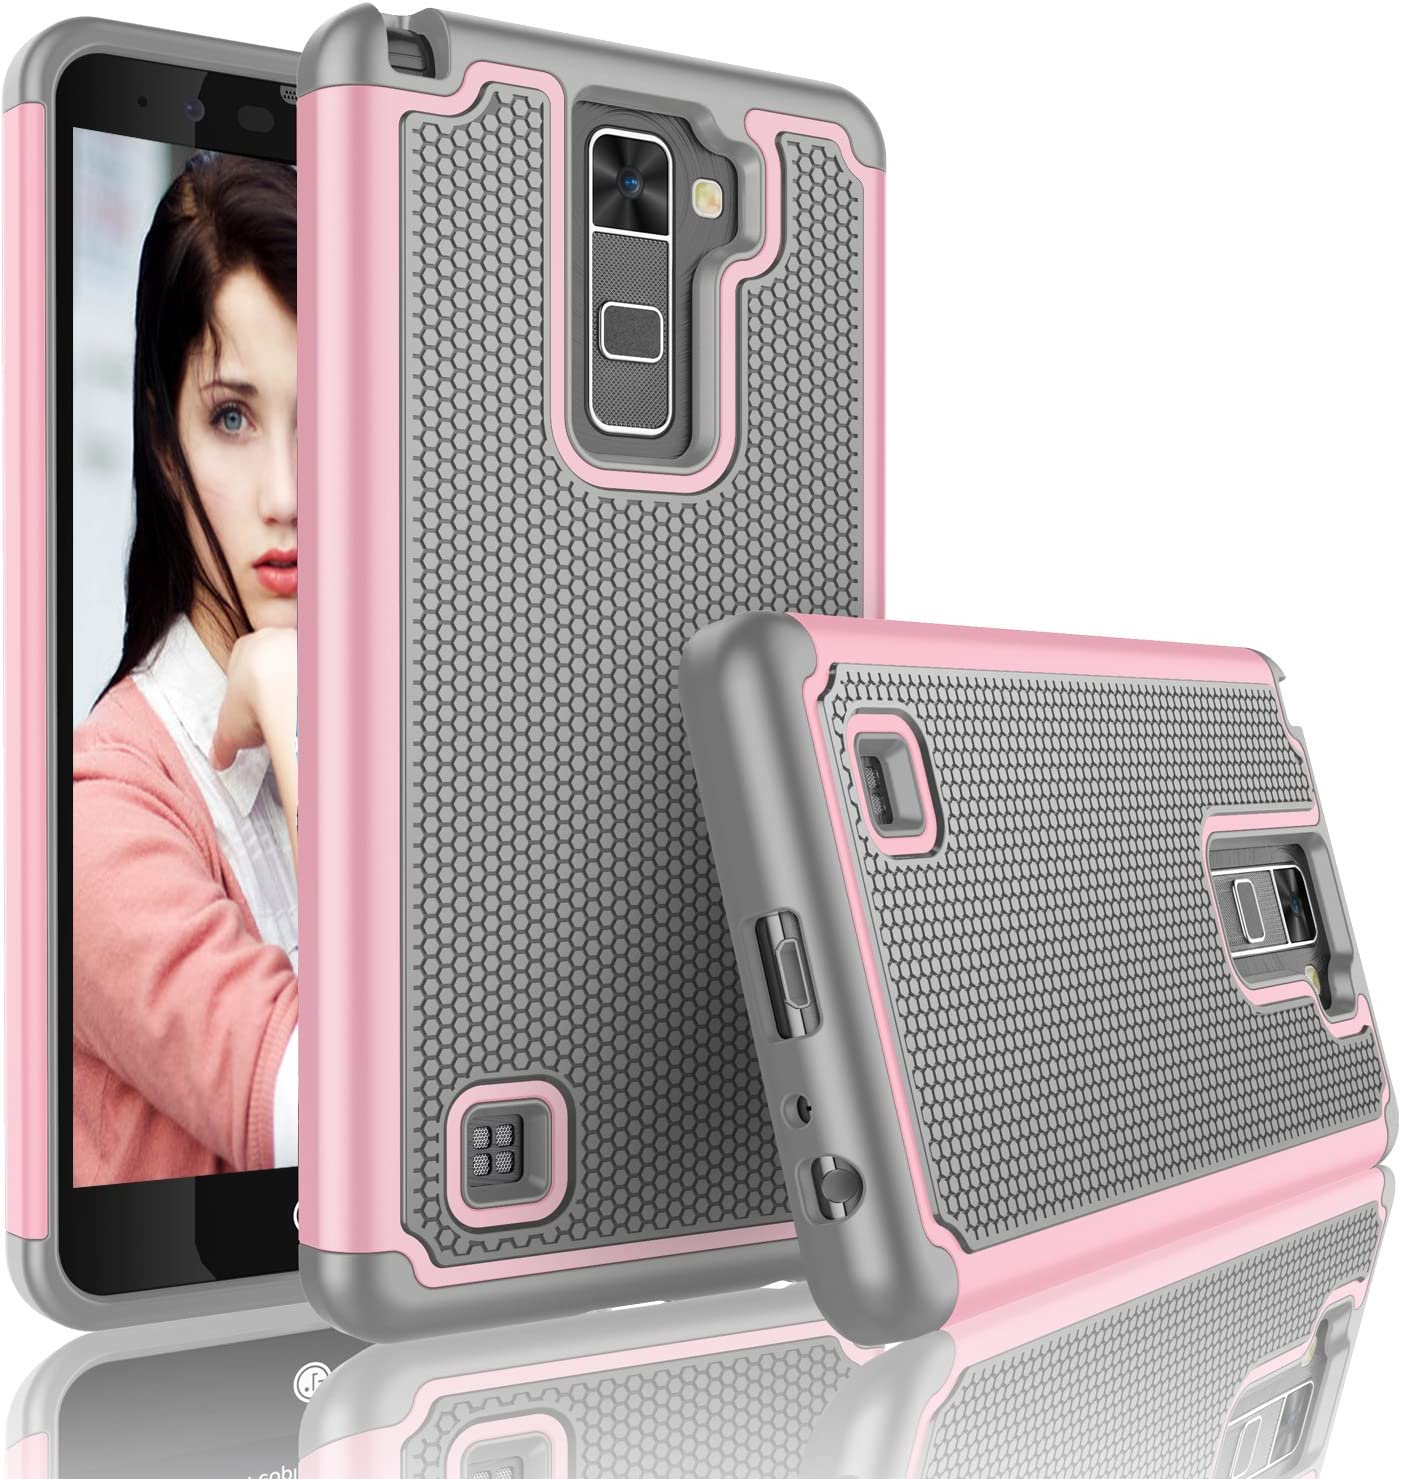 Njjex For LG Stylo 2 Plus Case, LG Stylus 2 Plus Case, [Nveins] Shock Absorbing Hybrid Dual Layer Rubber Plastic Impact Armor Defender Bumper Rugged Hard Case Cover Shell For LG G Stylo 2 Plus [Pink]